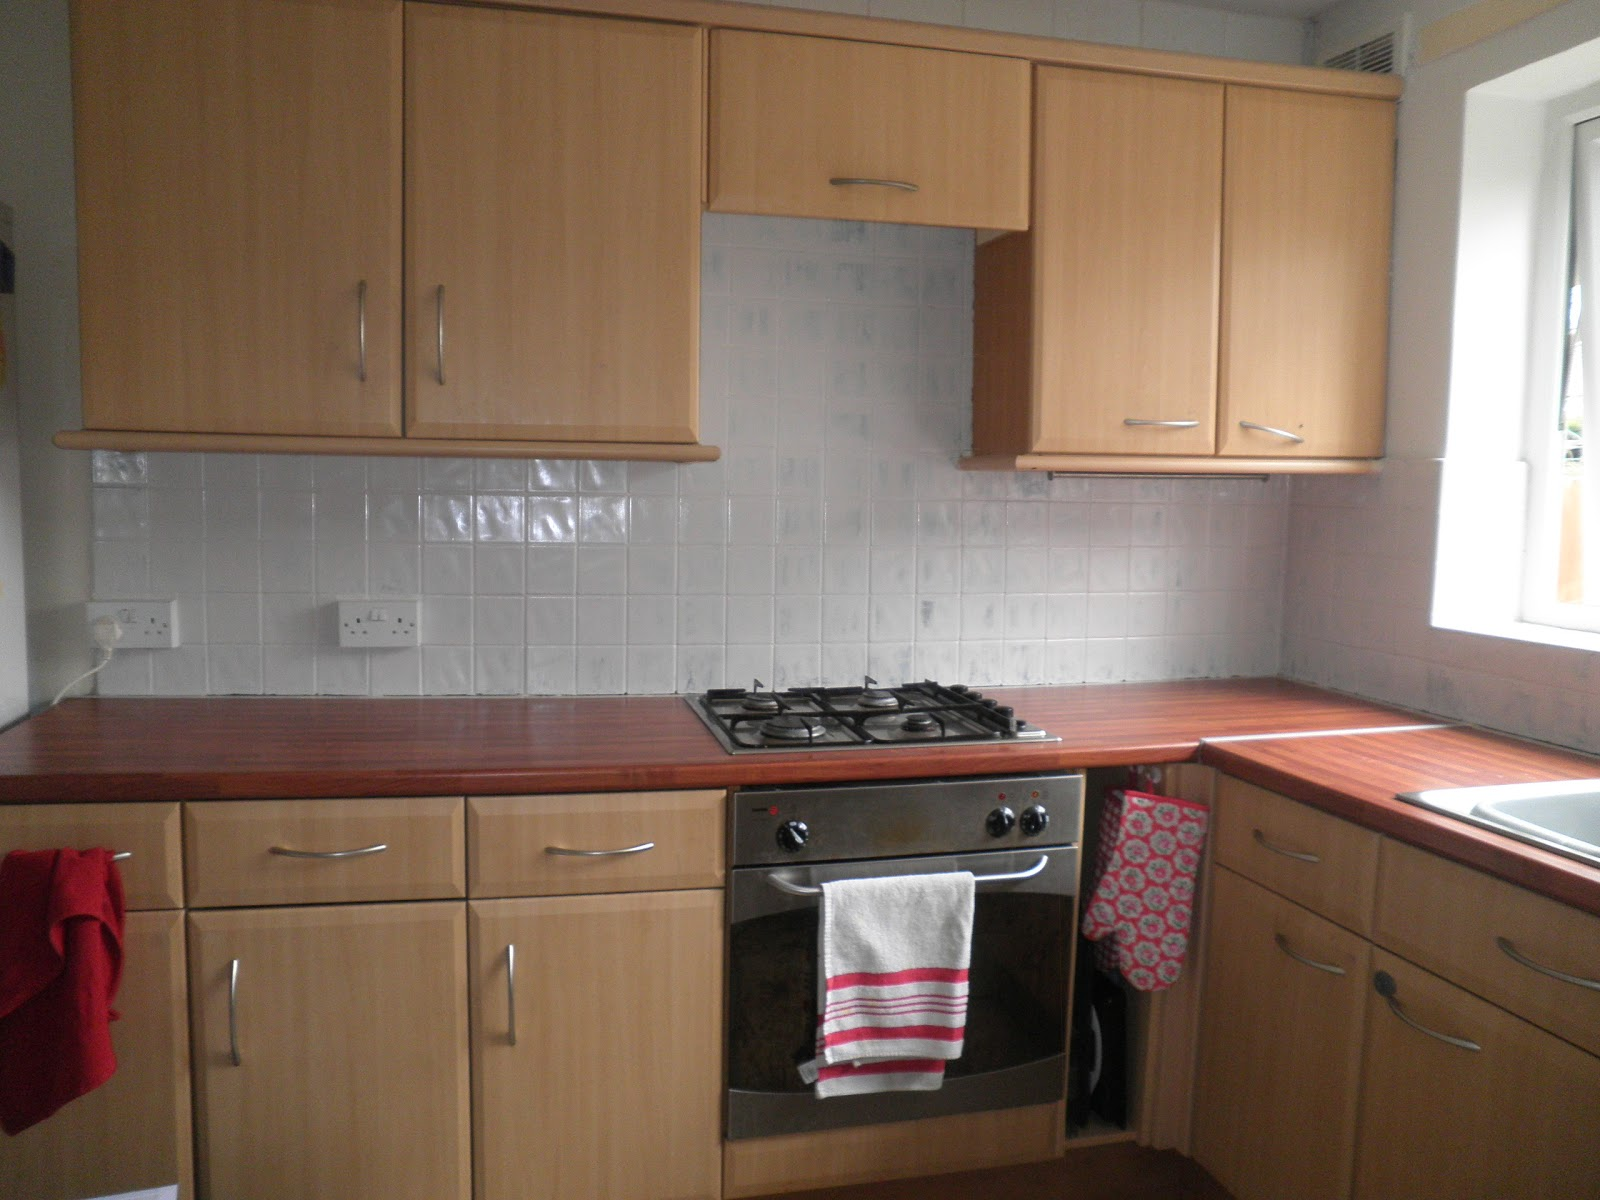 The Chimney Pot Before and After  Kitchen Tiles